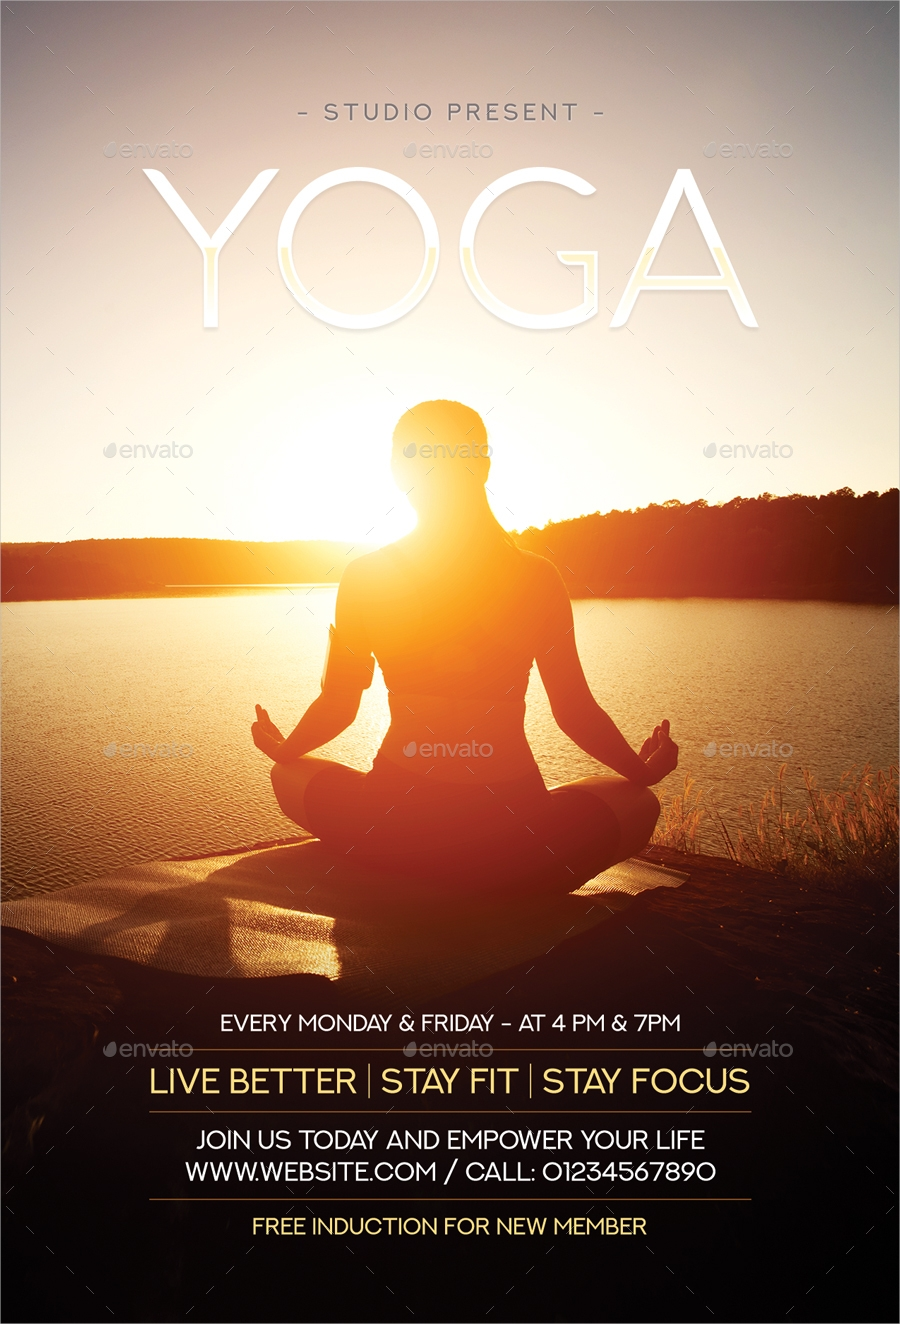 25  yoga flyer designs  u0026 examples  u2013 psd  ai  word  eps vector formats